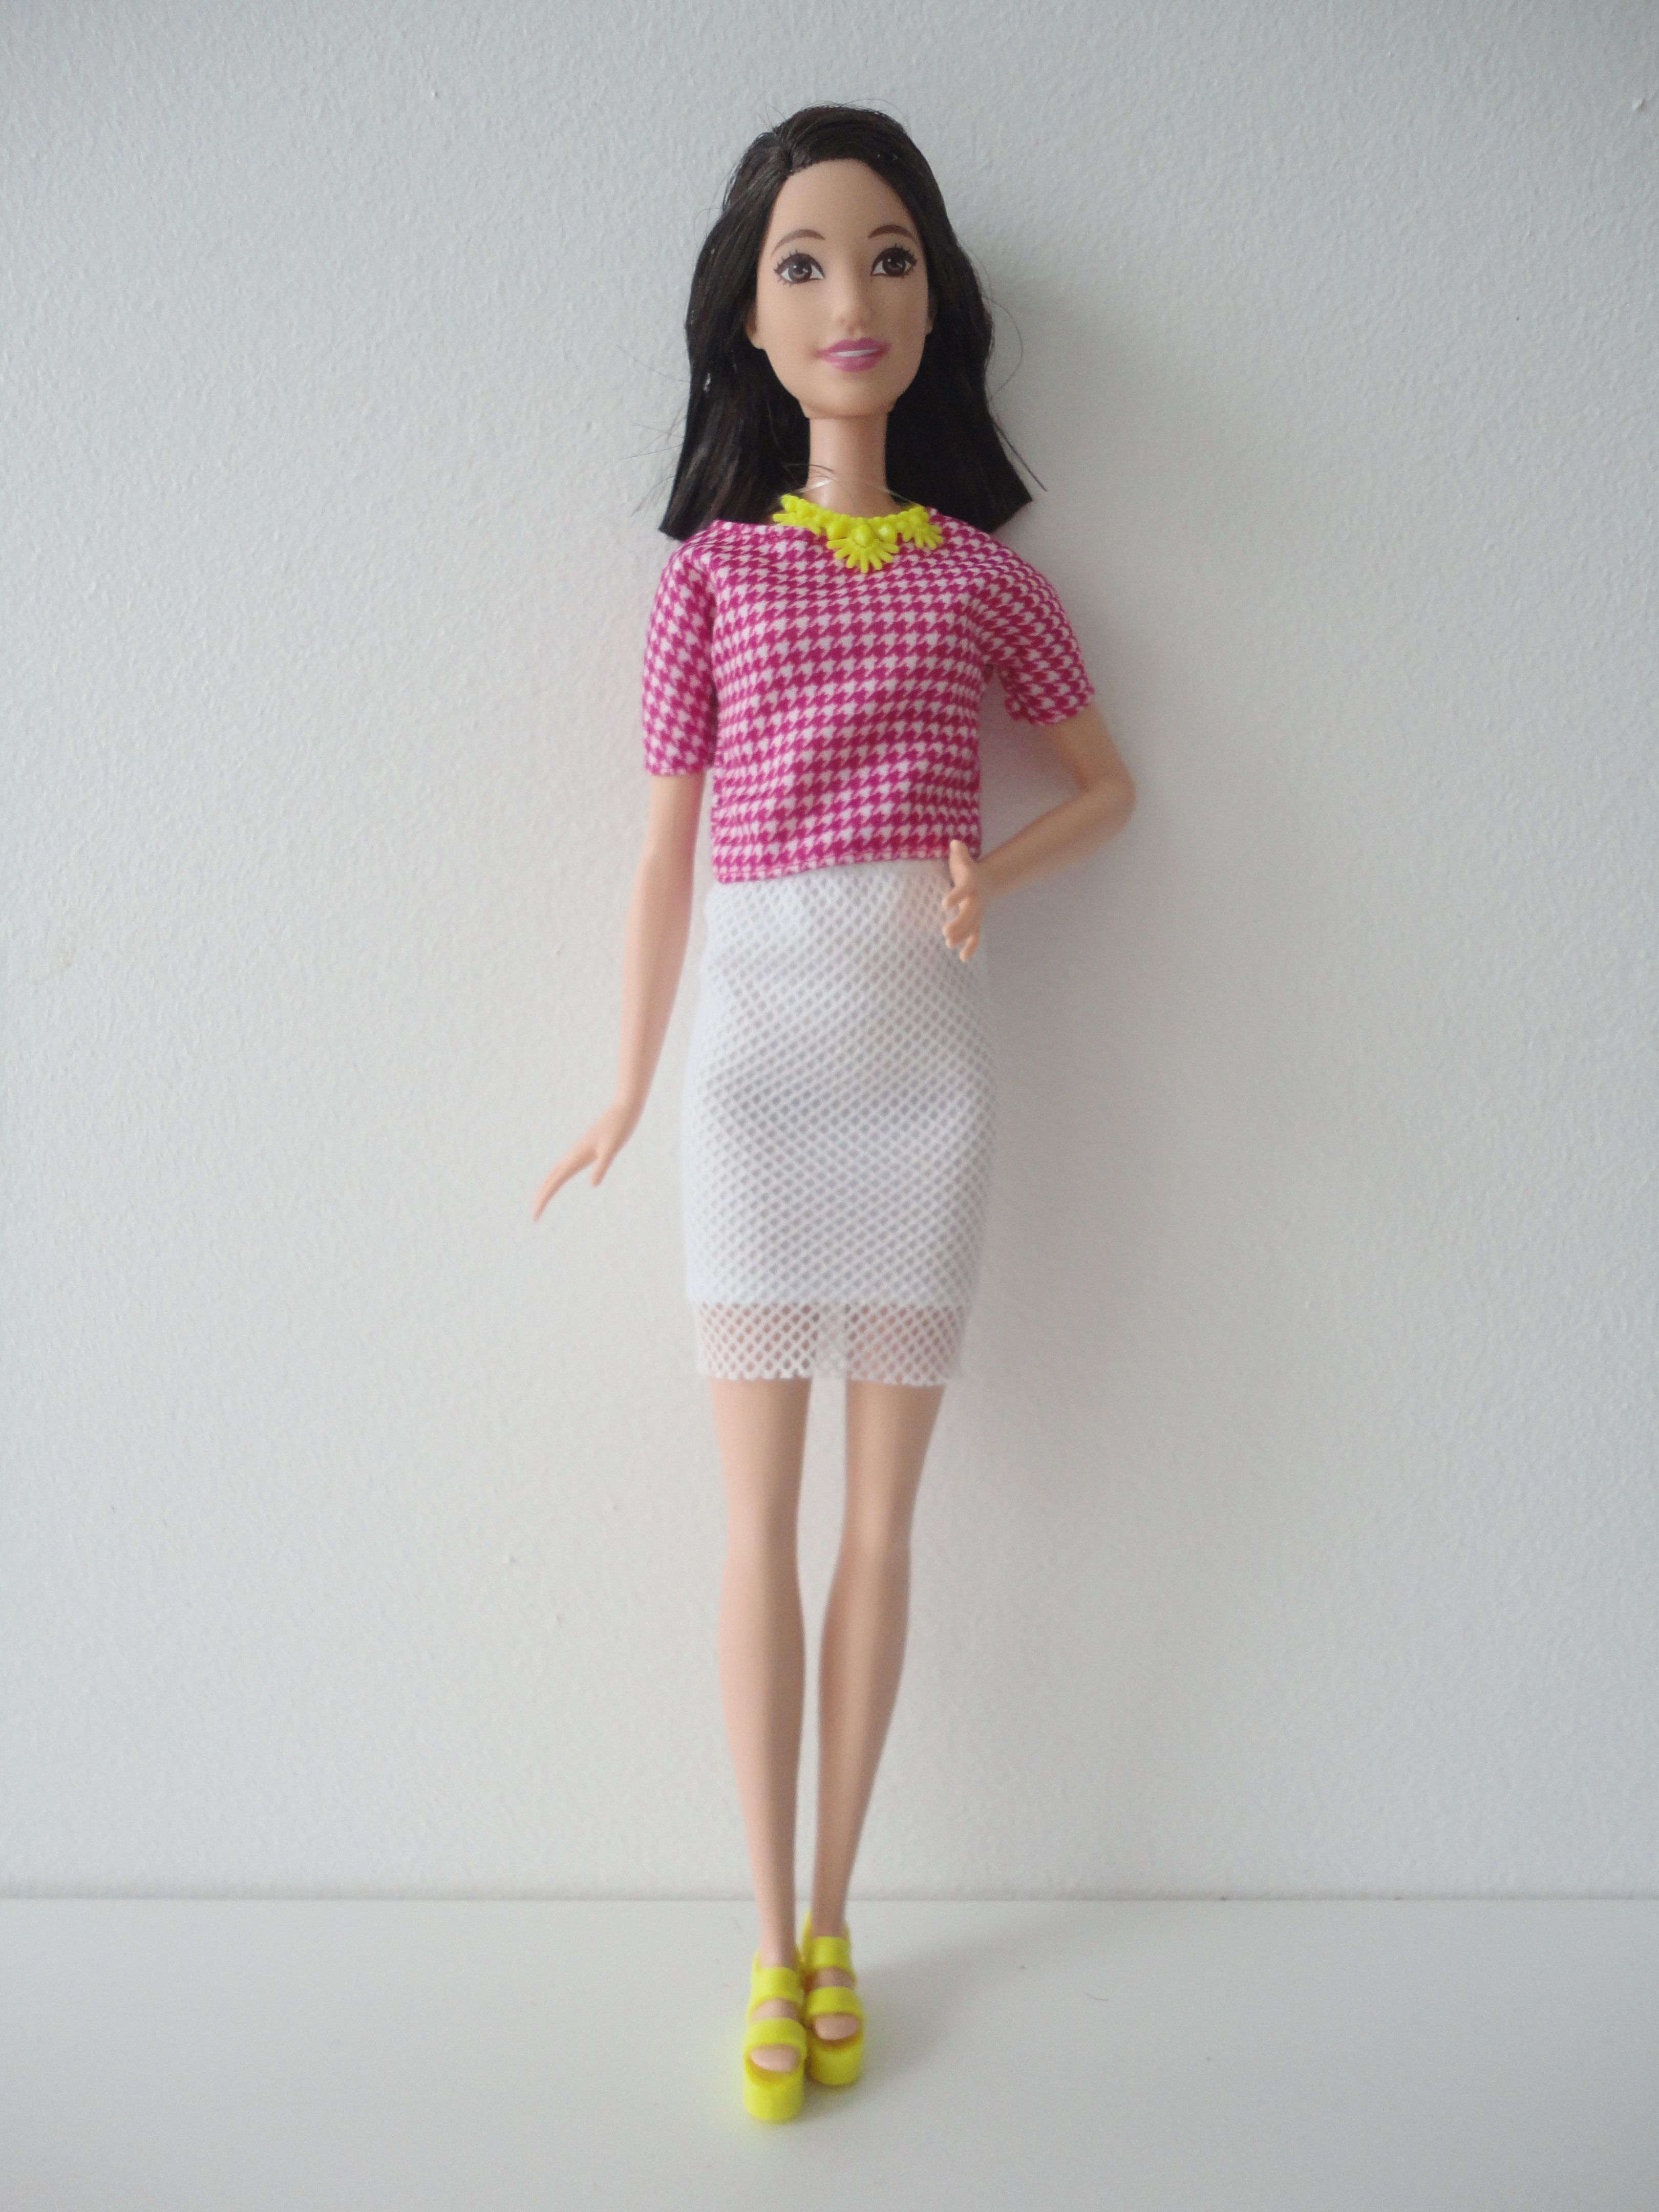 Barbie Fashionistas Barbie Doll # 30 White and Pink Pizzazz Tall New